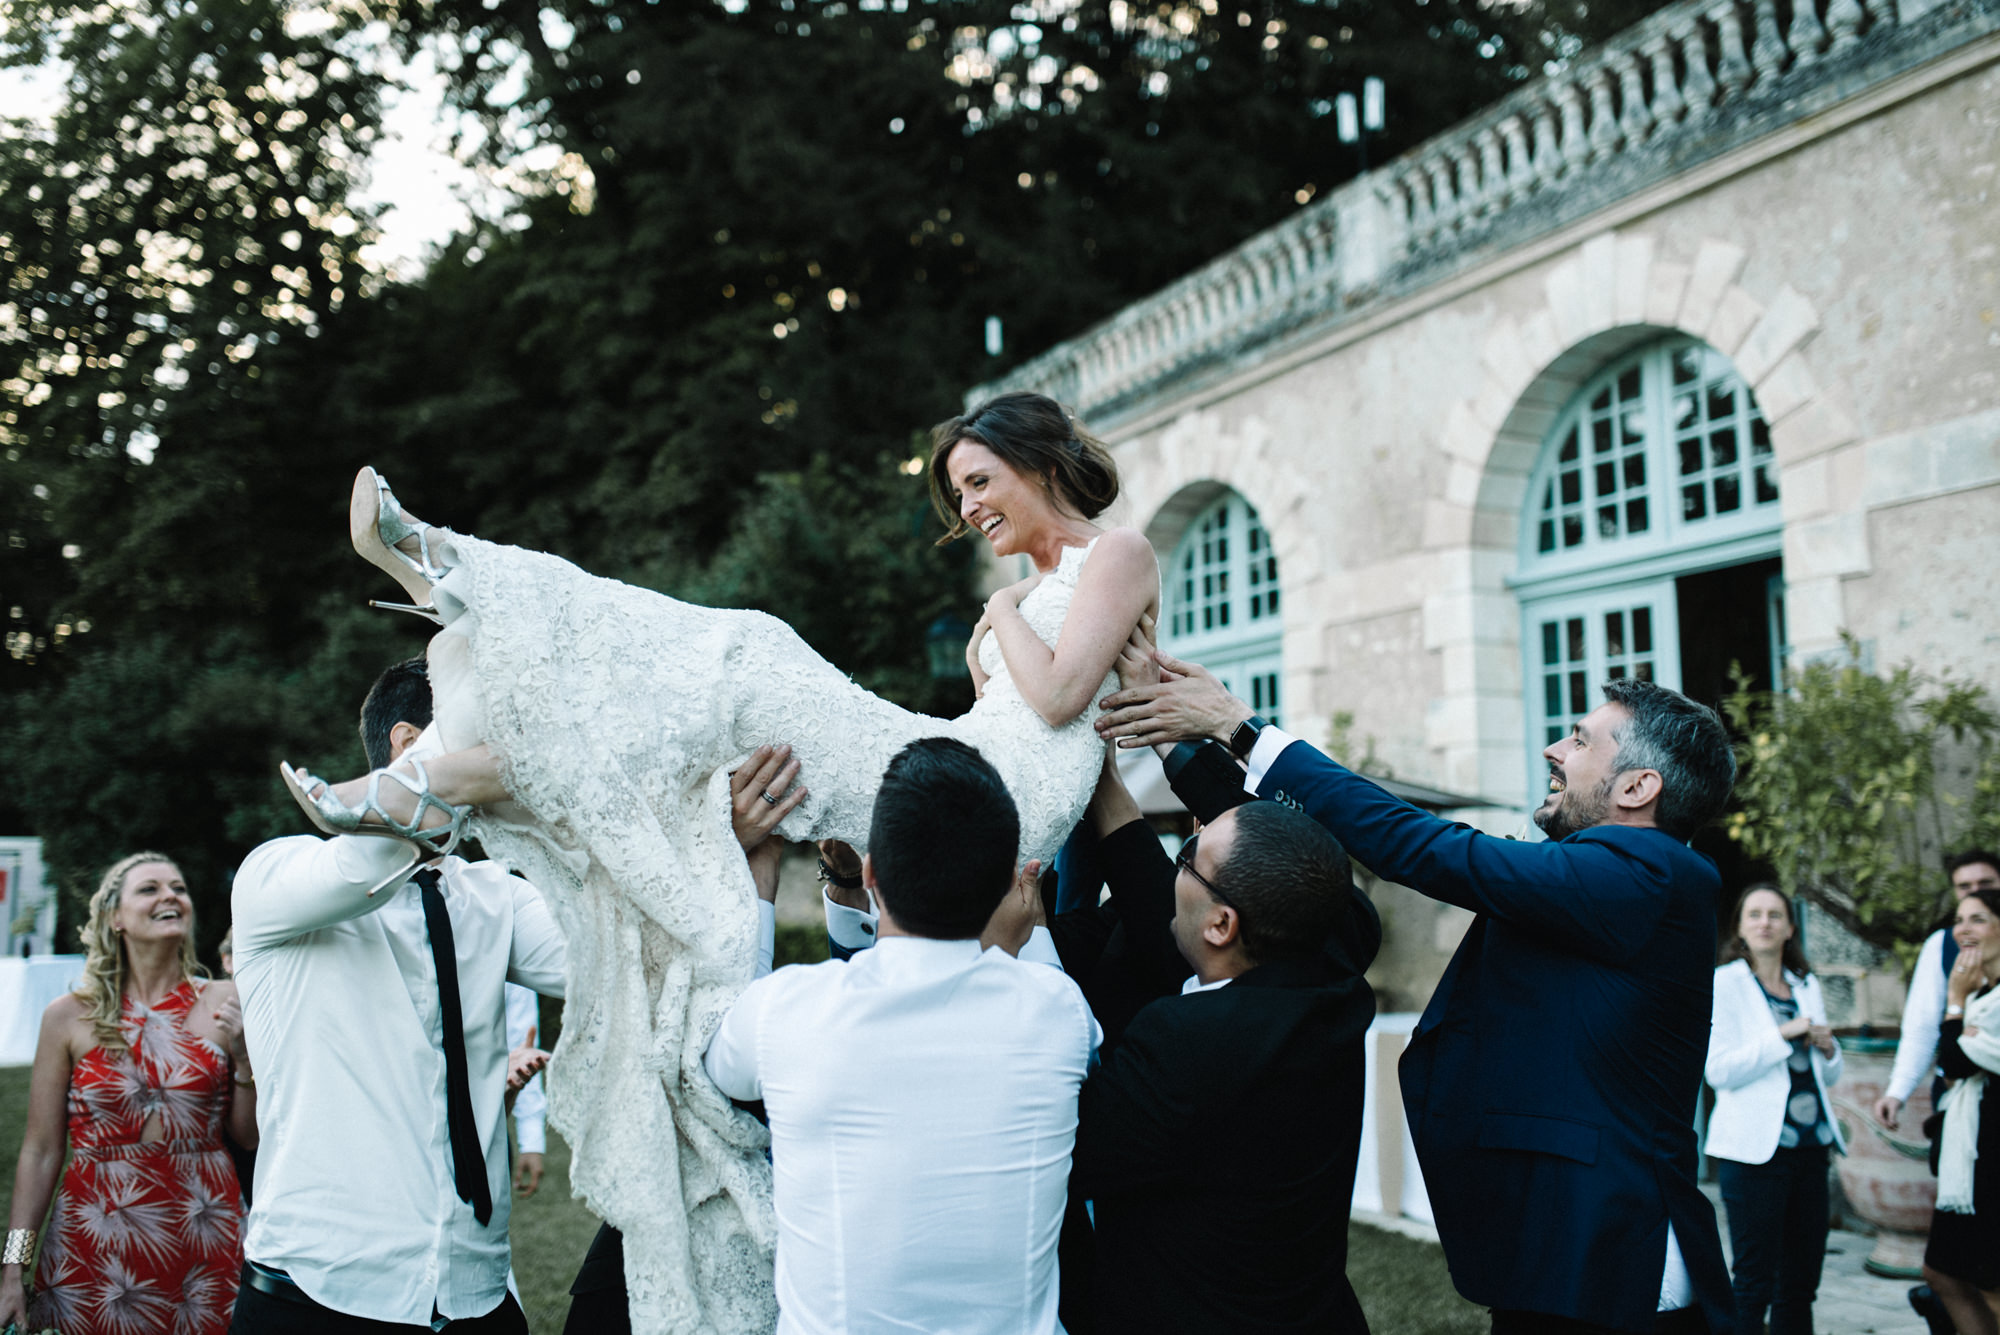 willybroussephotography-wedding-loirevalley-bidaudieres-laura-mathieu-108